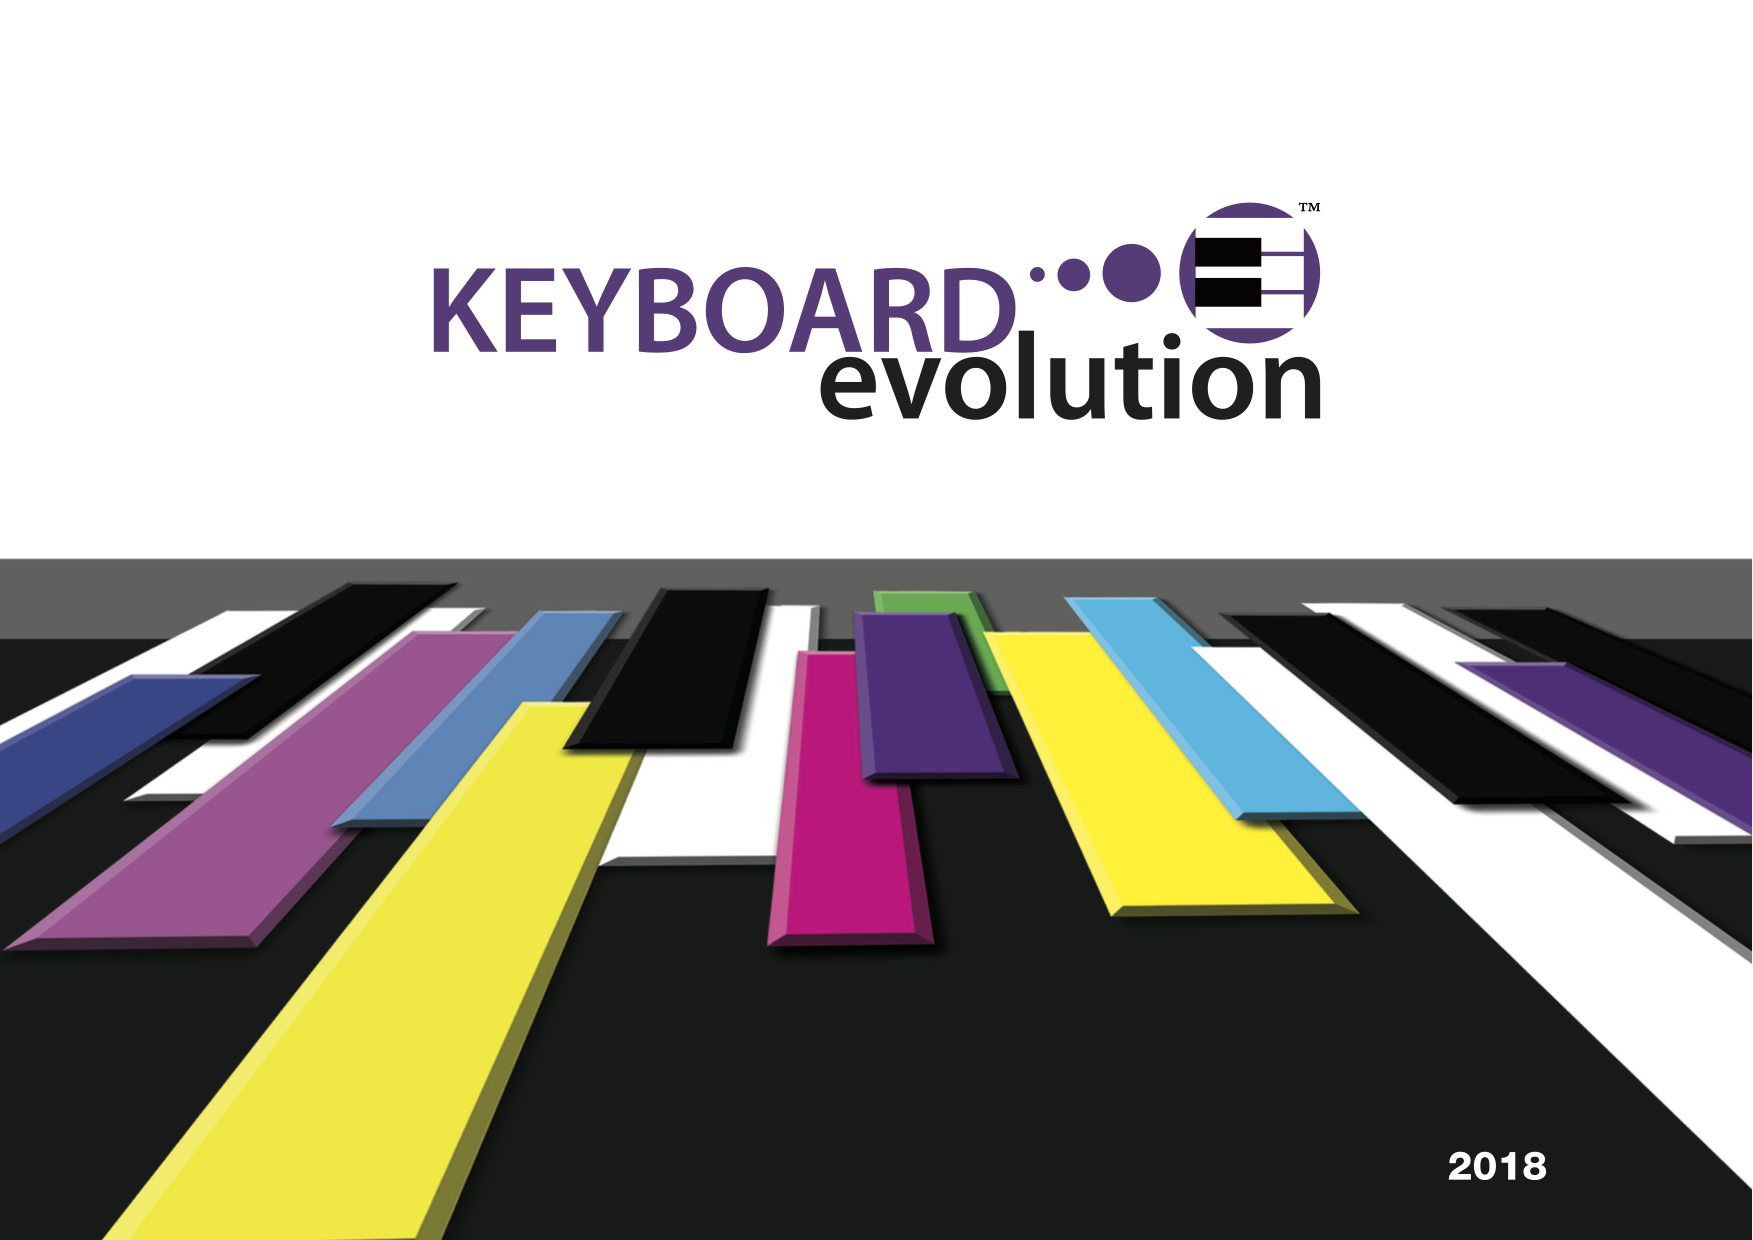 Keyboard Evolution competition